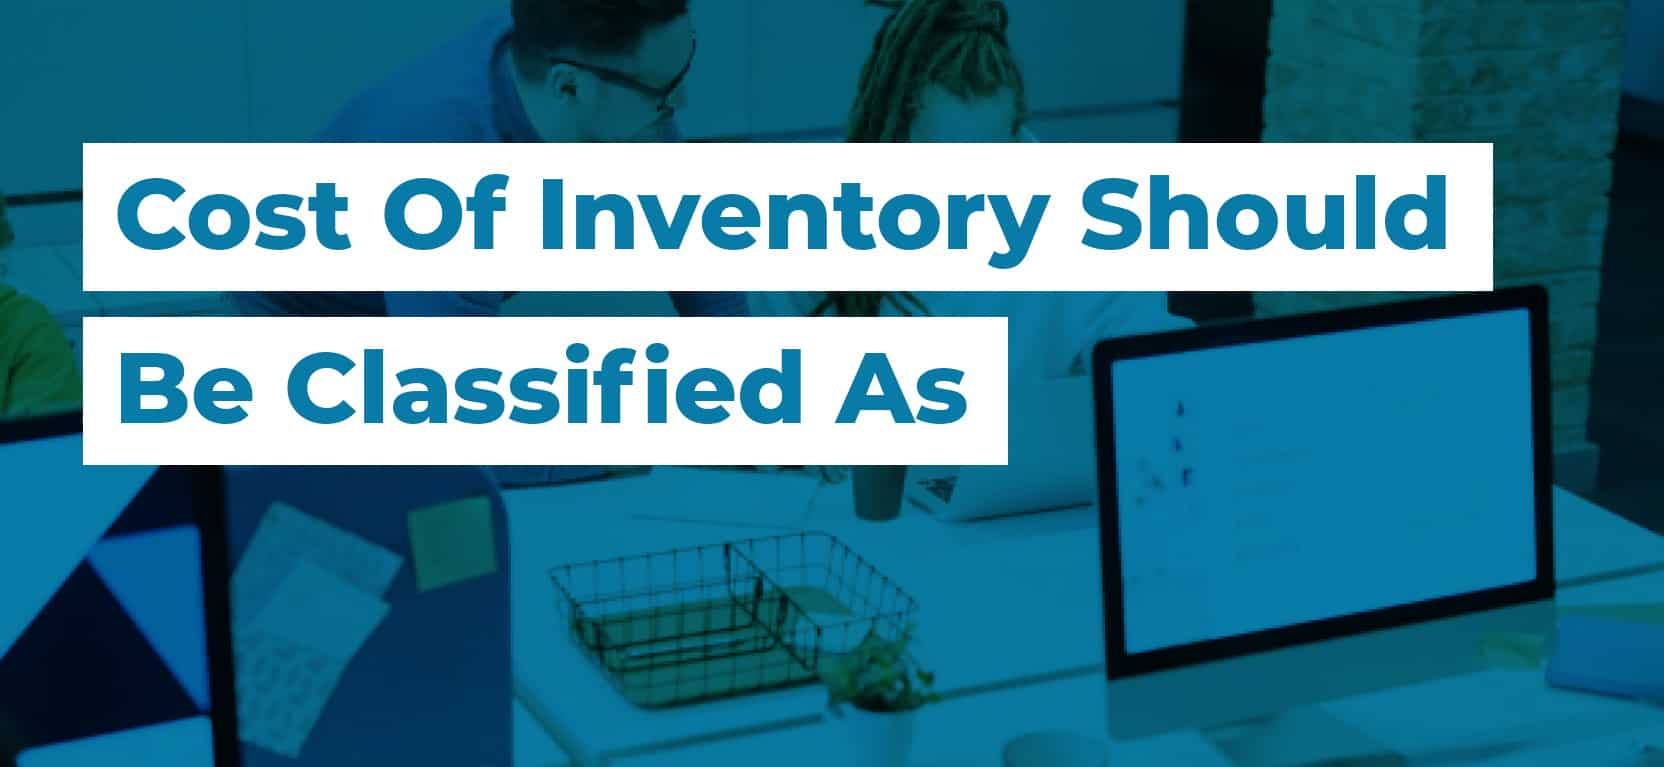 23 Cost Of Inventory Should Be Classified As3